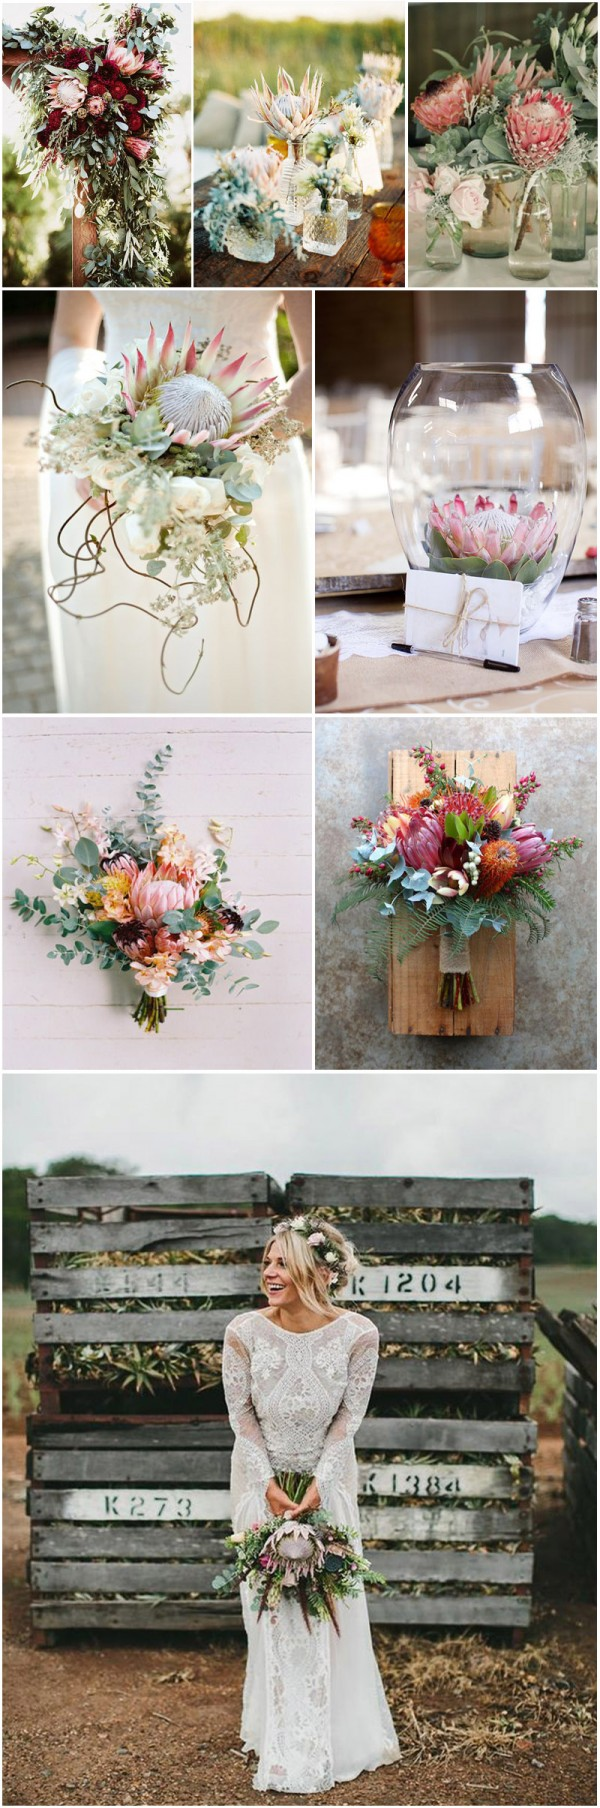 Protea-bouquets-and-decorations-for-the-wedding-ceremony